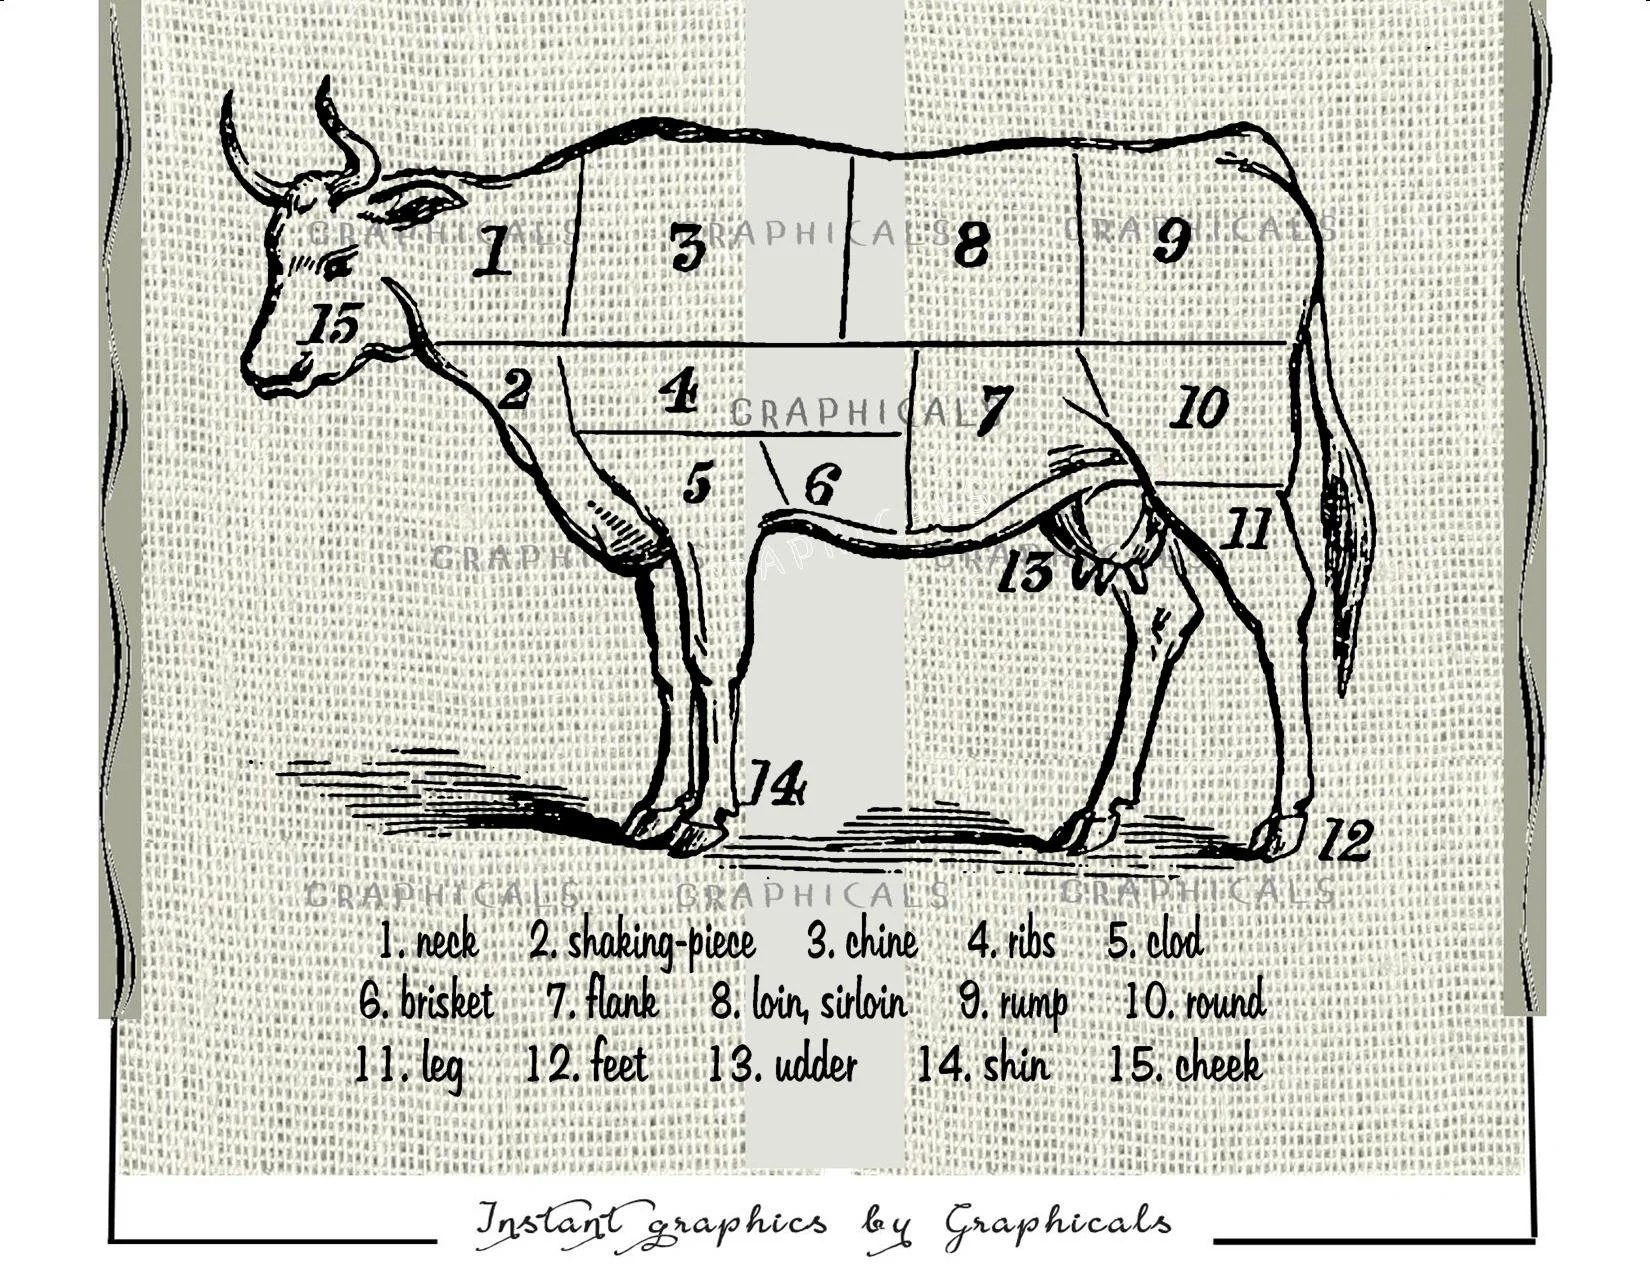 Beef cuts butcher chart instant clip art digital download printable graphic  for iron on fabric transfer Burlap Decoupage Pillow Paper 1735